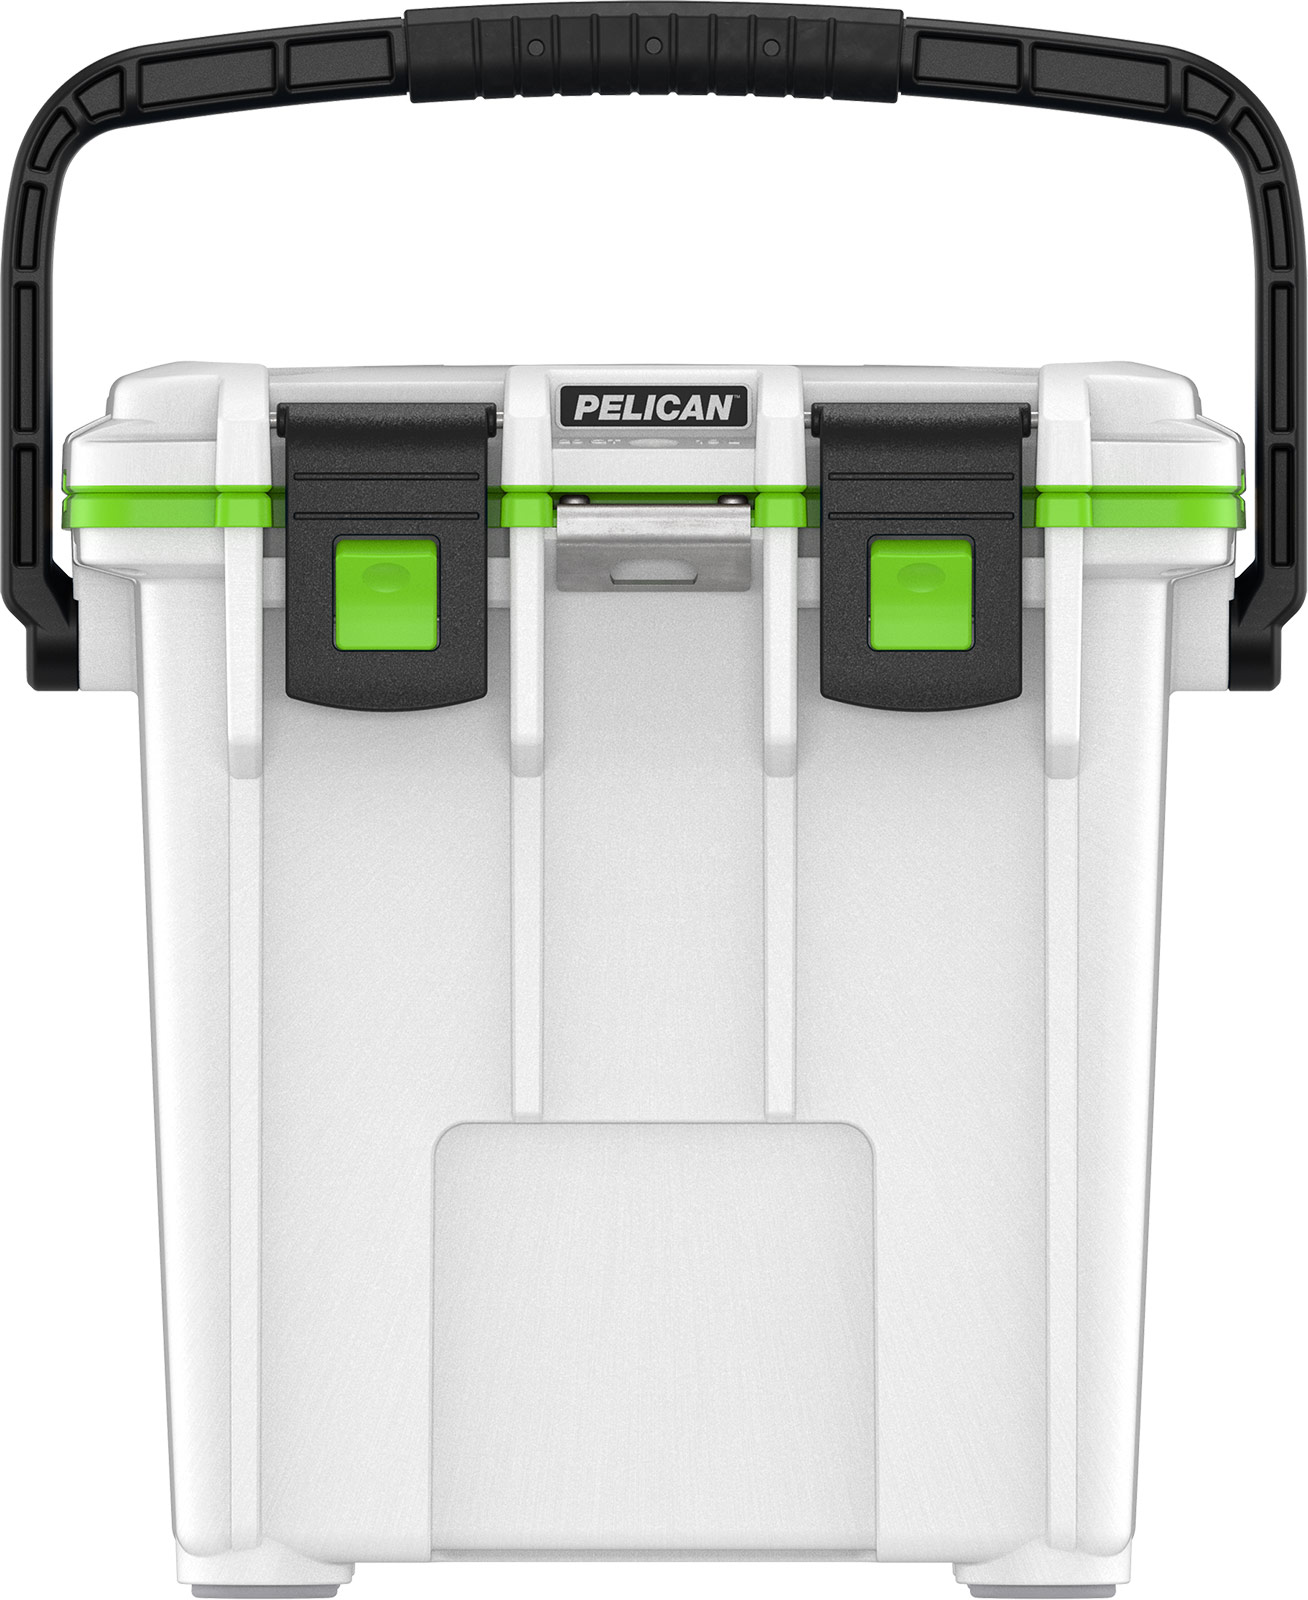 pelican 20qt picnic cooler cocktail 20qt